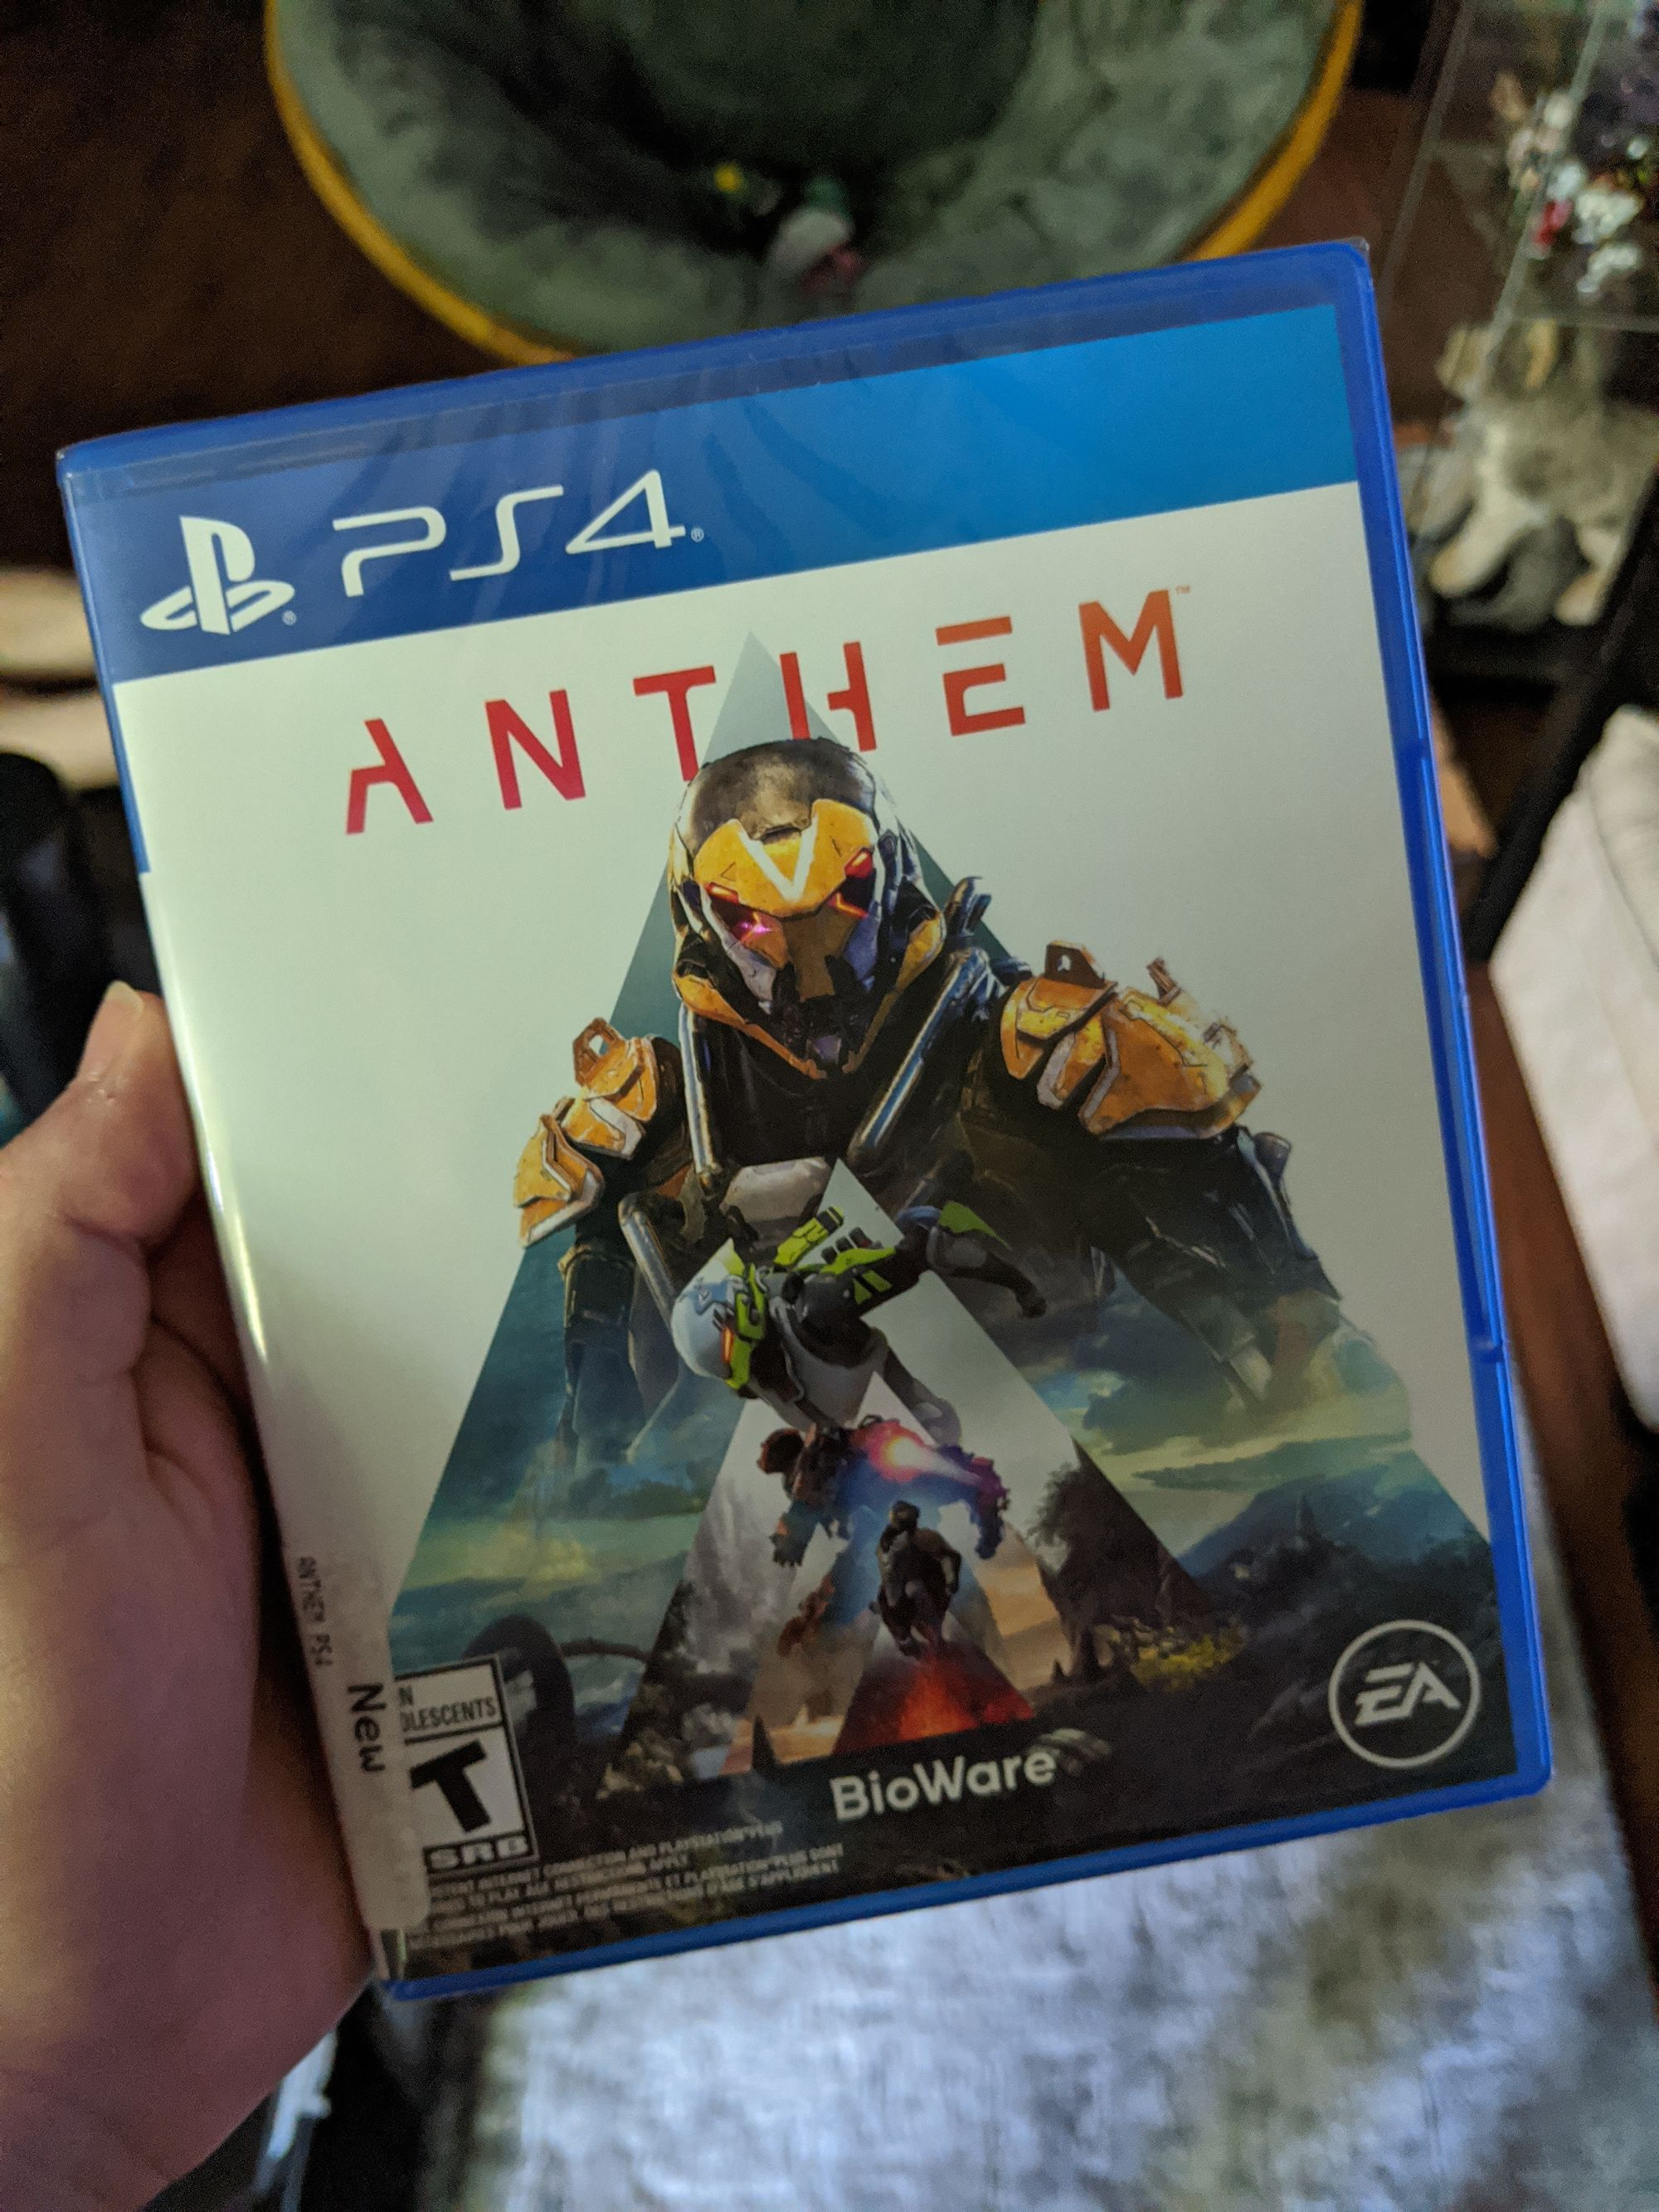 A picture of the game Anthem for PS4.